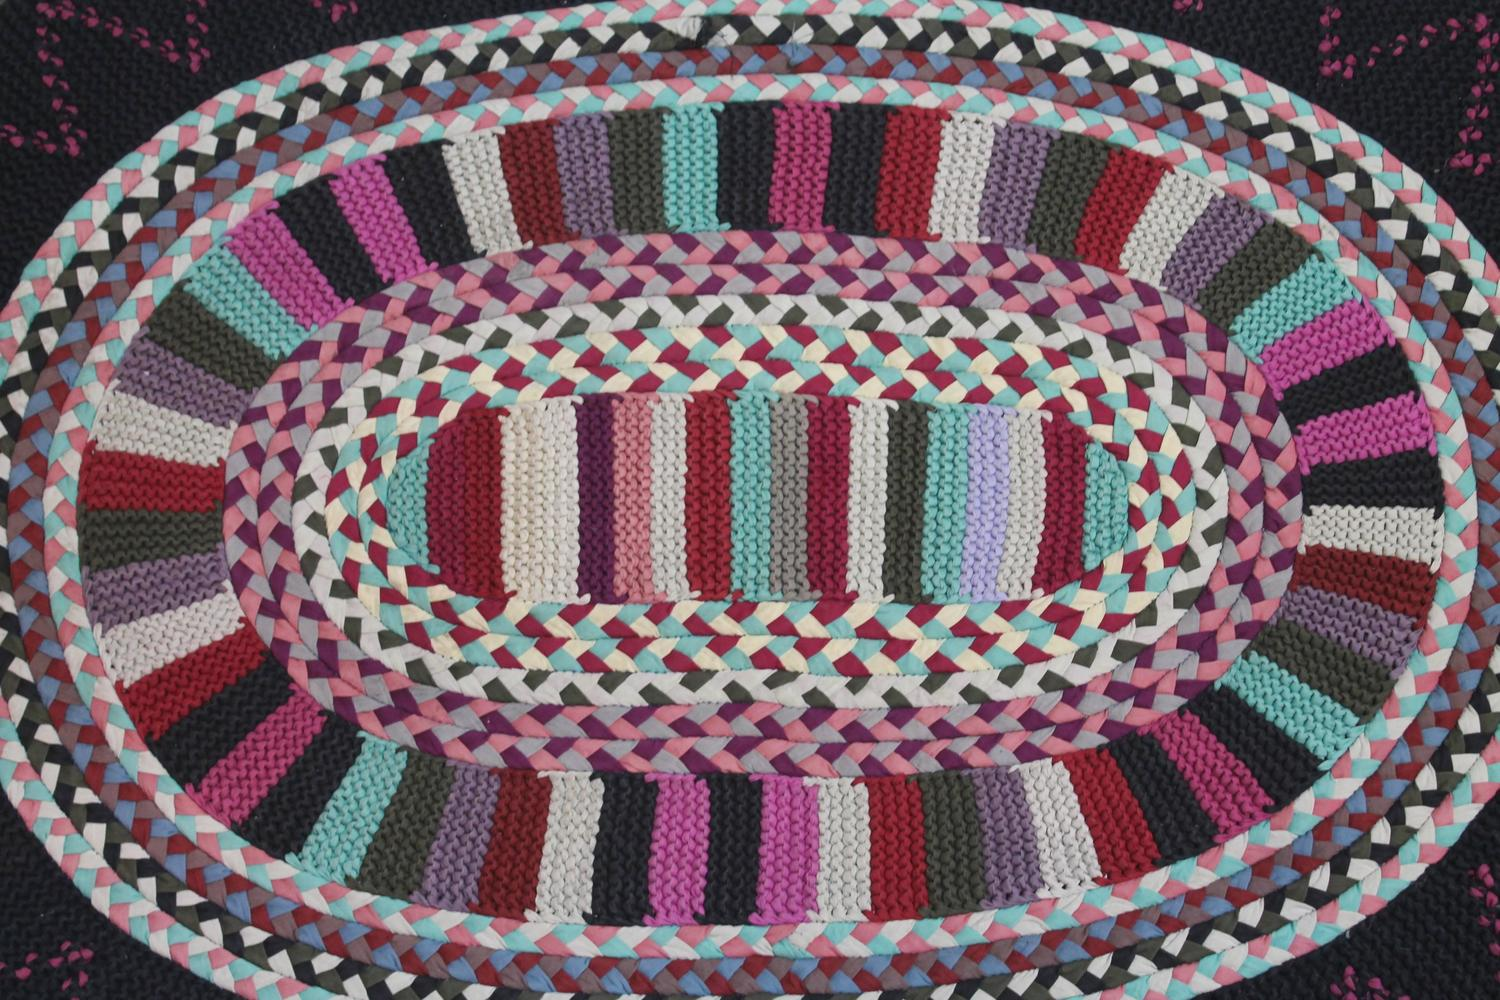 Early 20th Century Braided Amish Rug From Pennsylvania For